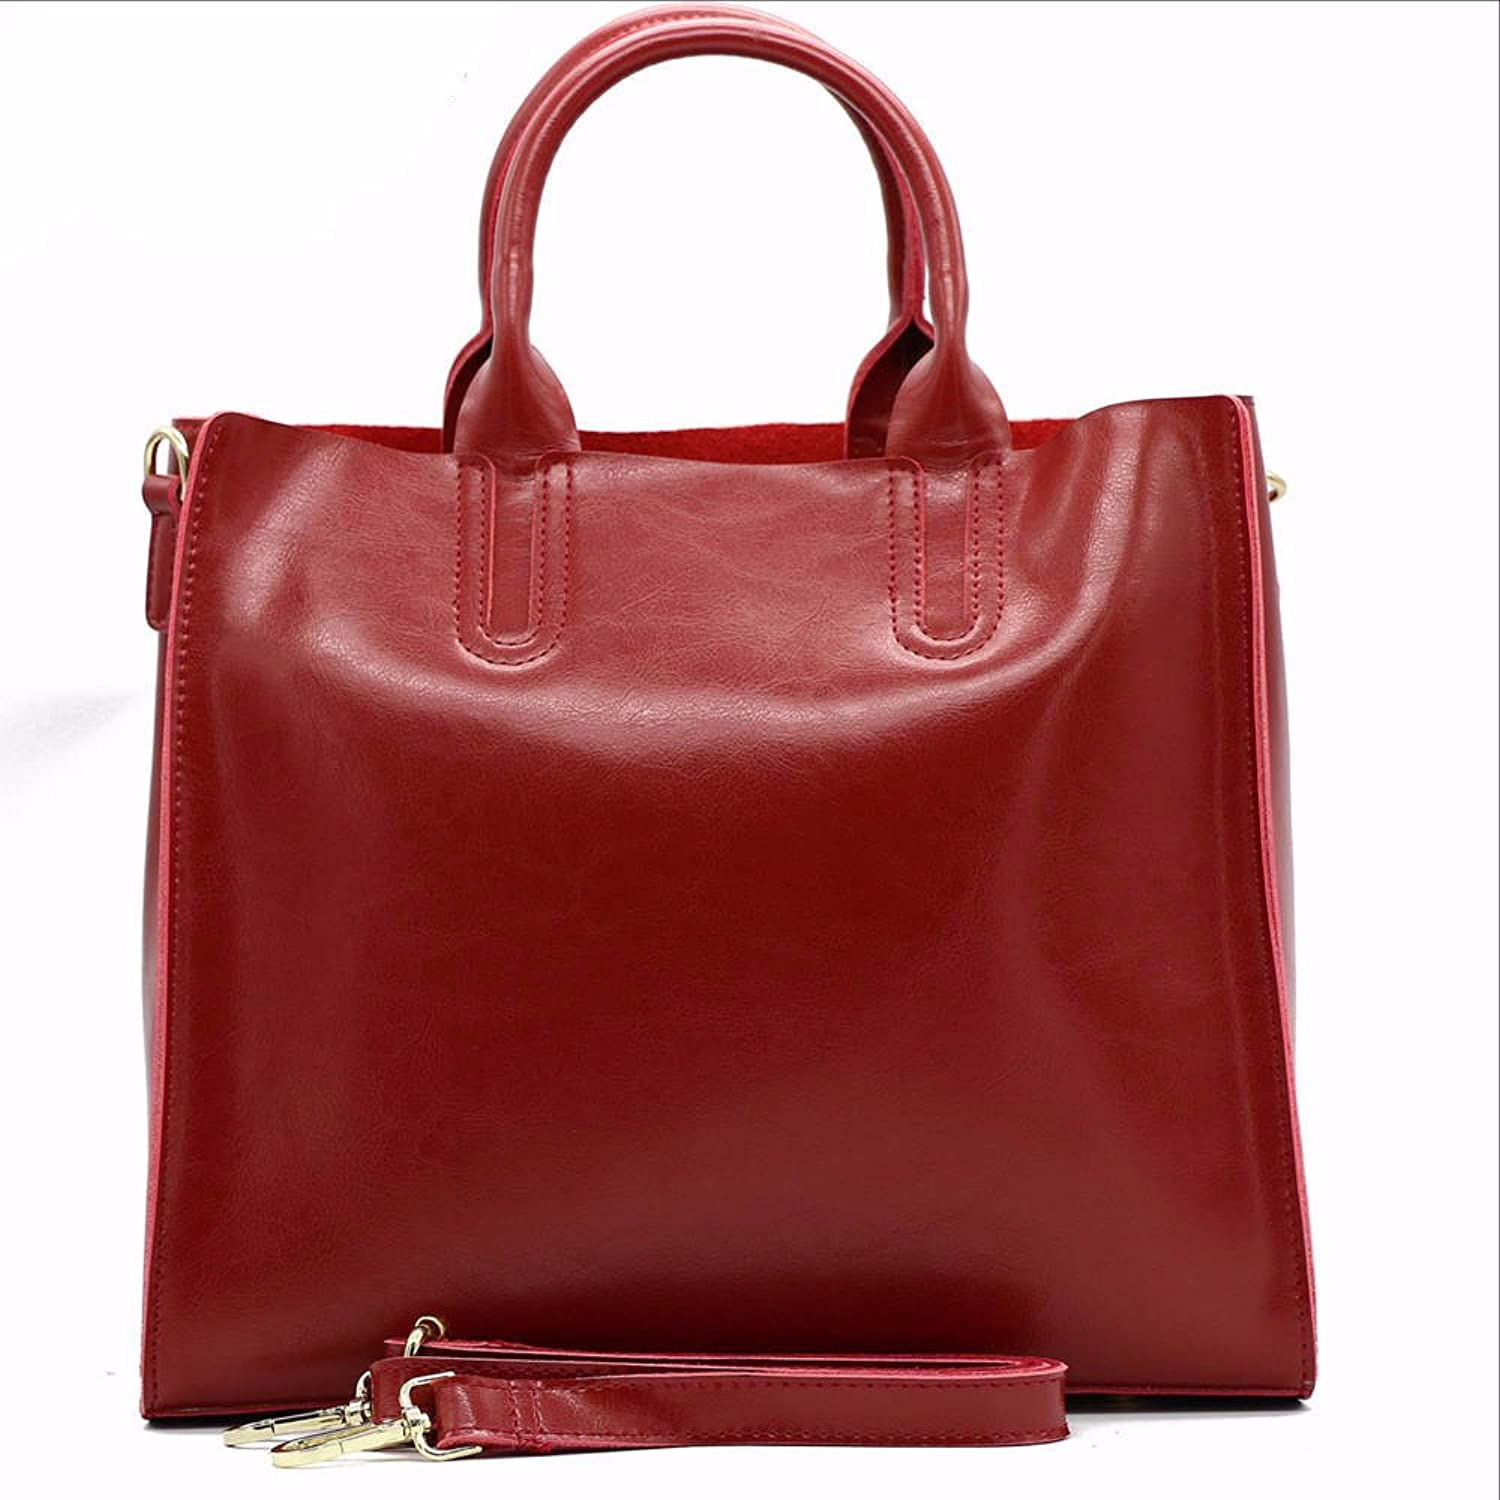 Leather Women Shoulder Bag European Brand Designer Real Leather Bag Shopping Handbag